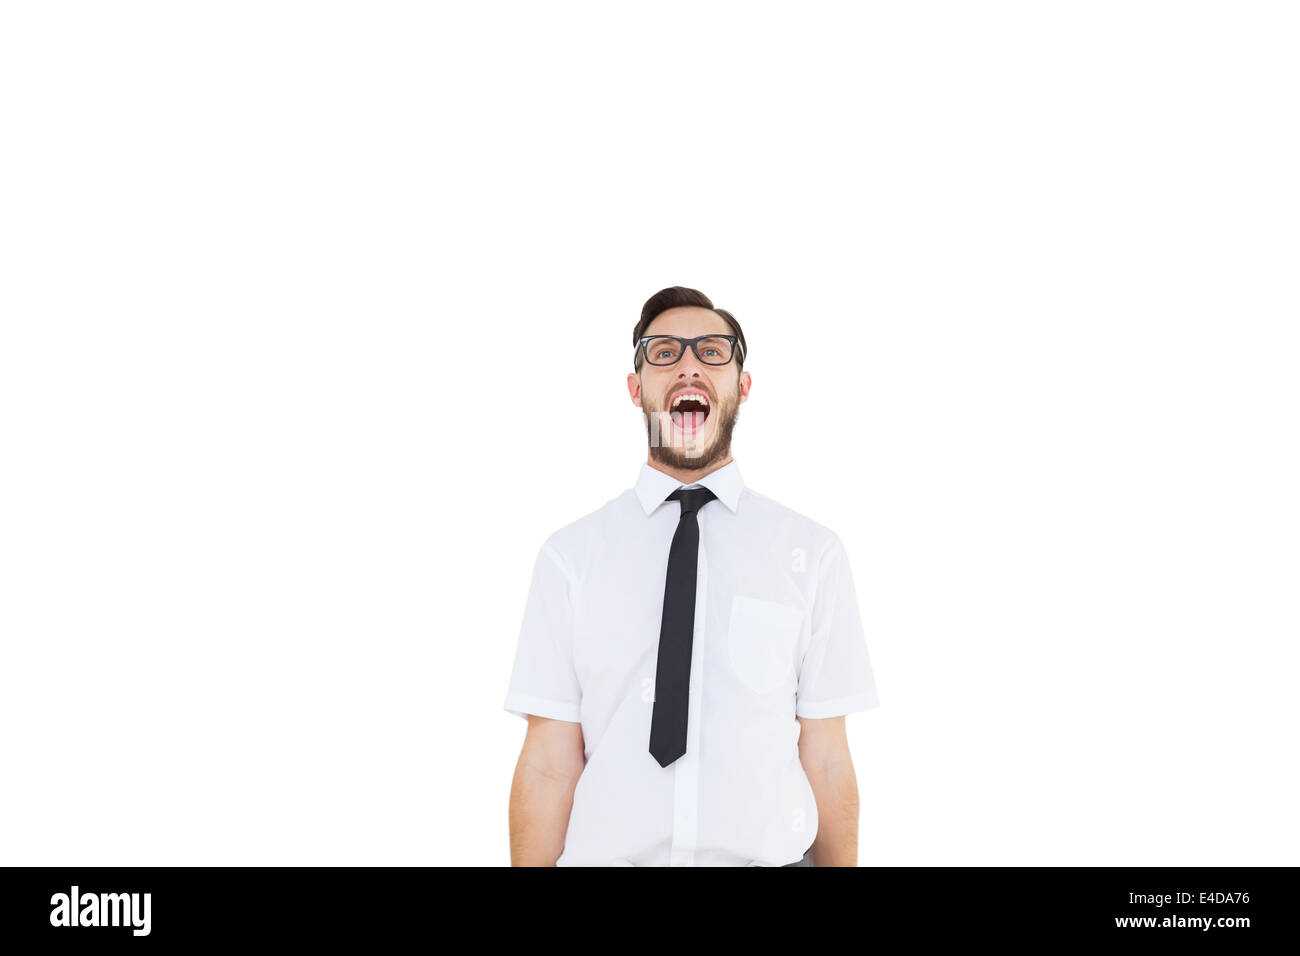 Geeky young businessman shouting loudly - Stock Image